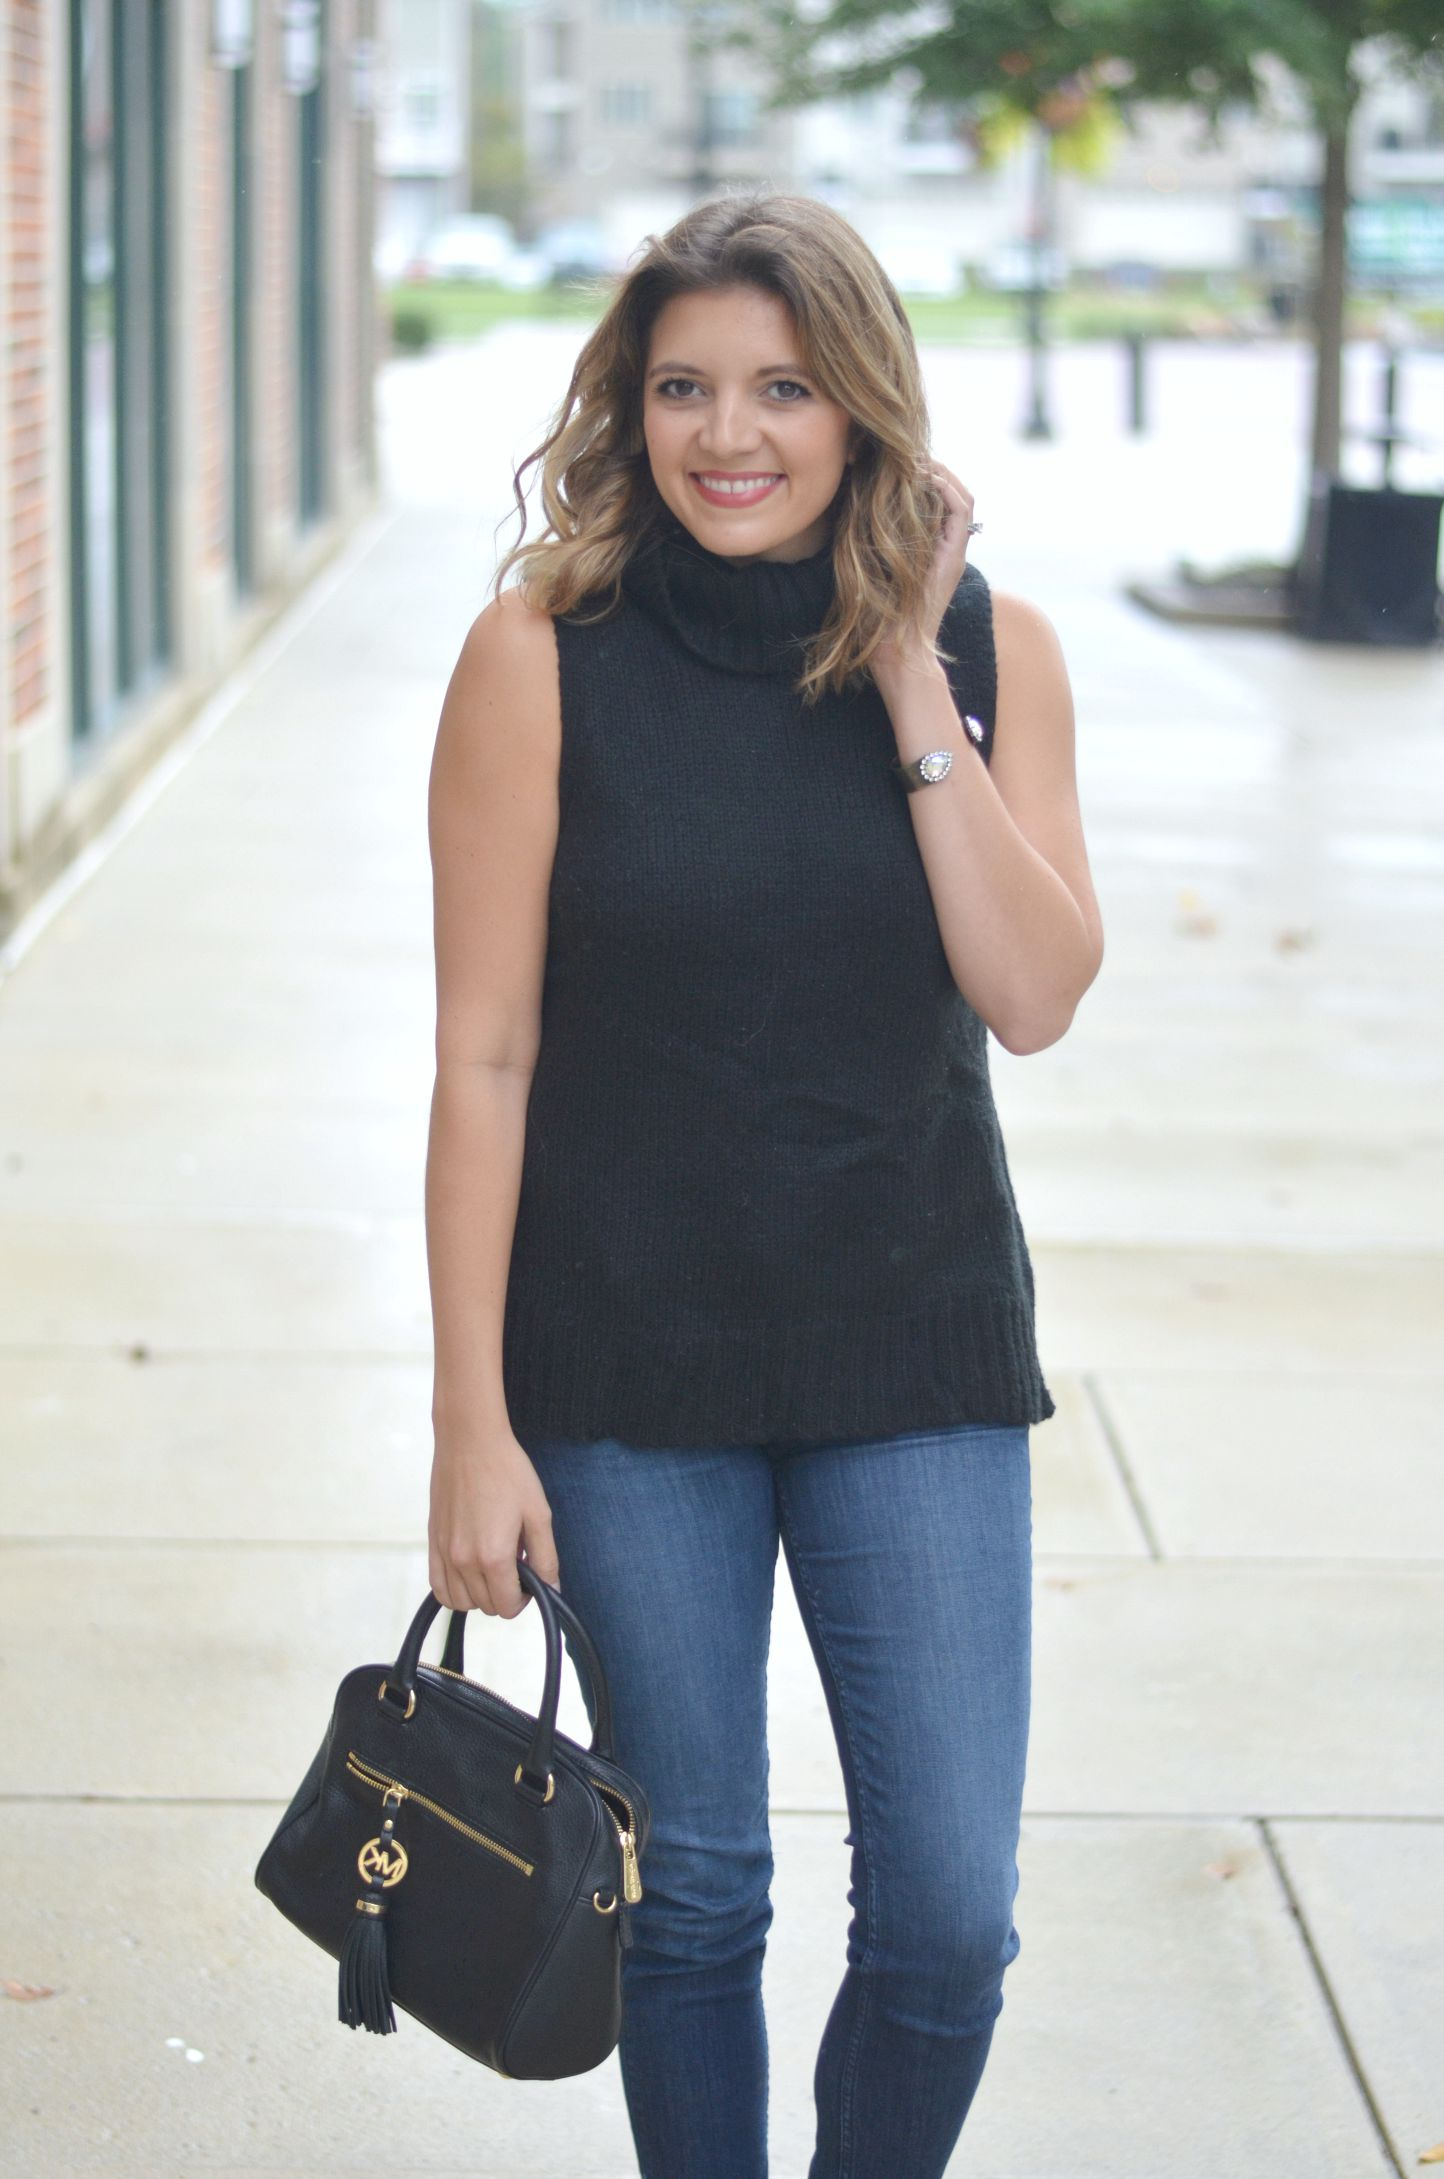 Sleeveless Turtleneck Sweater | By Lauren M